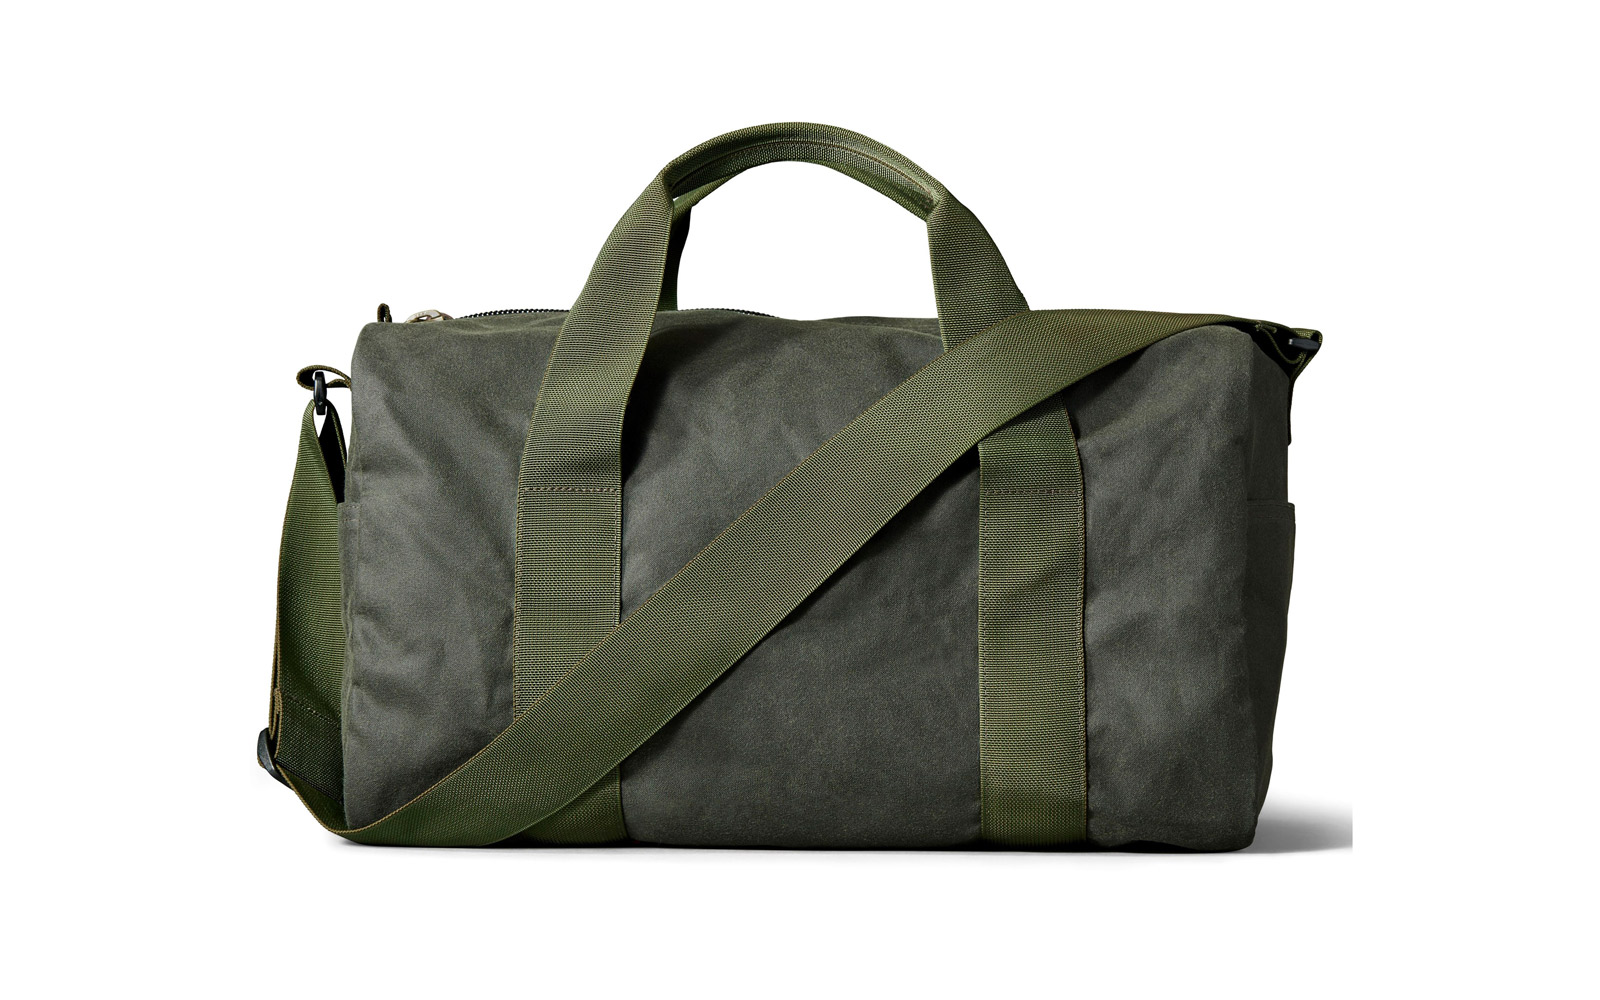 c8d4e81a6d2c4 The Best Weekender Bags, According to Travel Editors | Travel + Leisure